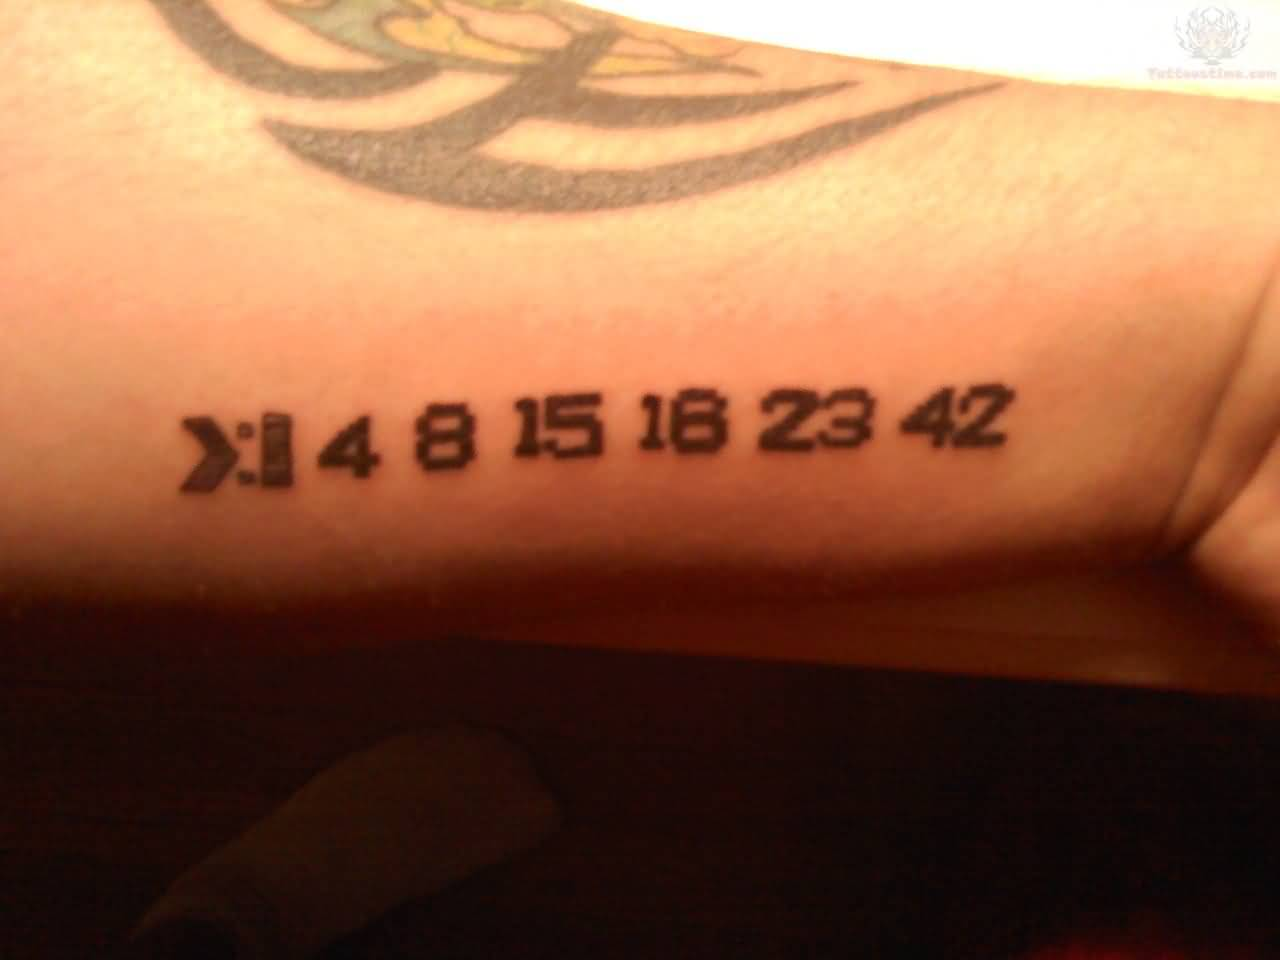 Small Digits Black Ink Numbers With Tribal Tattoo On Wrist